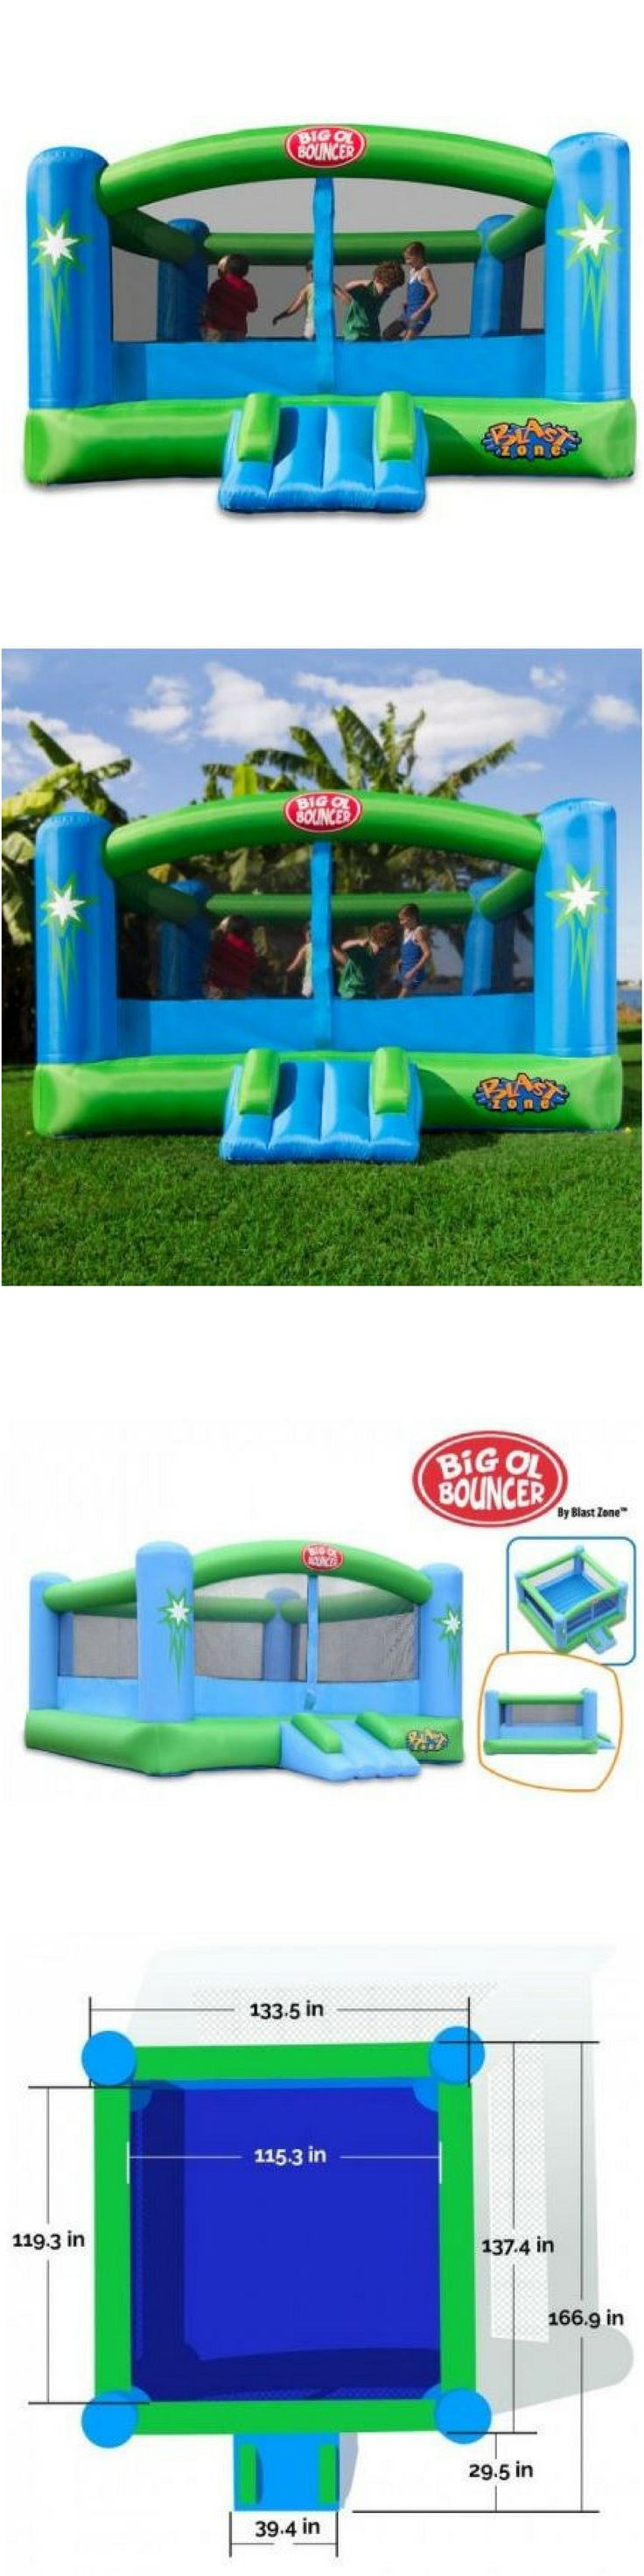 Inflatable Bouncers 145979: Inflatable Bouncer Commercial Bounce House Kids Jump Party Trampoline Blast Zone -> BUY IT NOW ONLY: $498.61 on eBay!